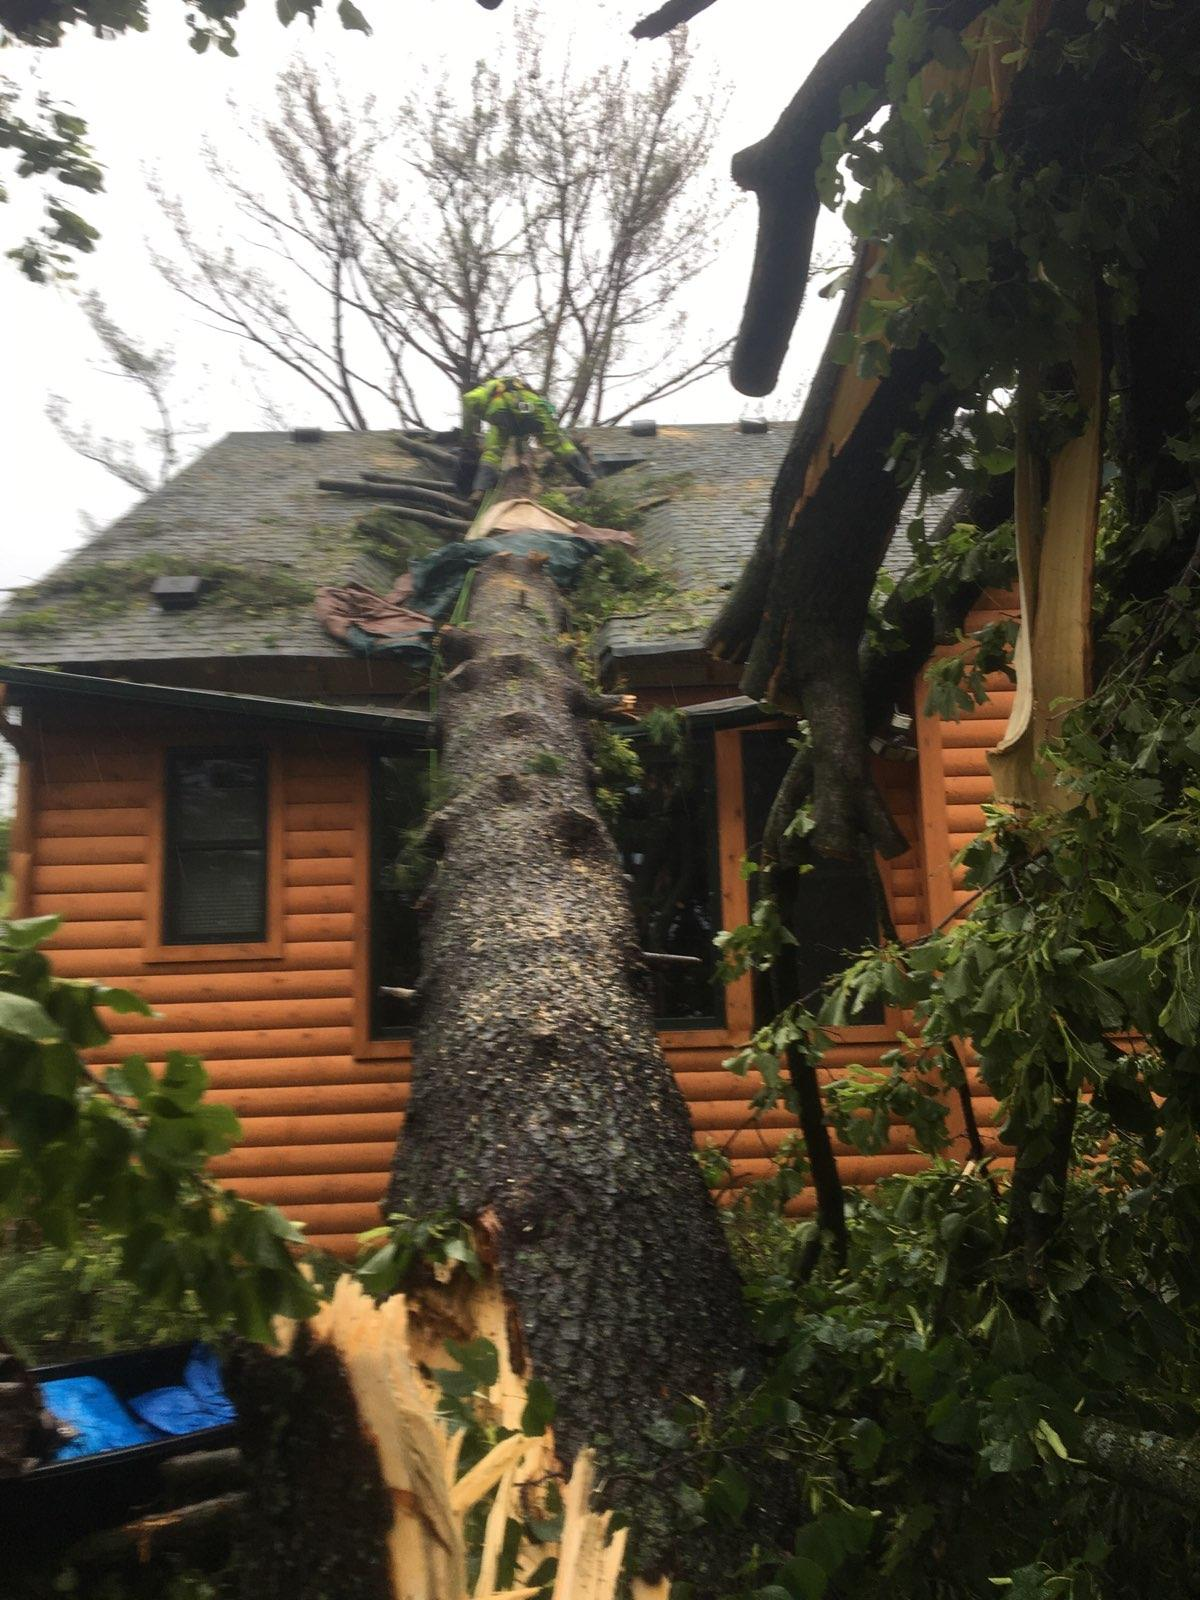 Storm Damage - Tree fell on house